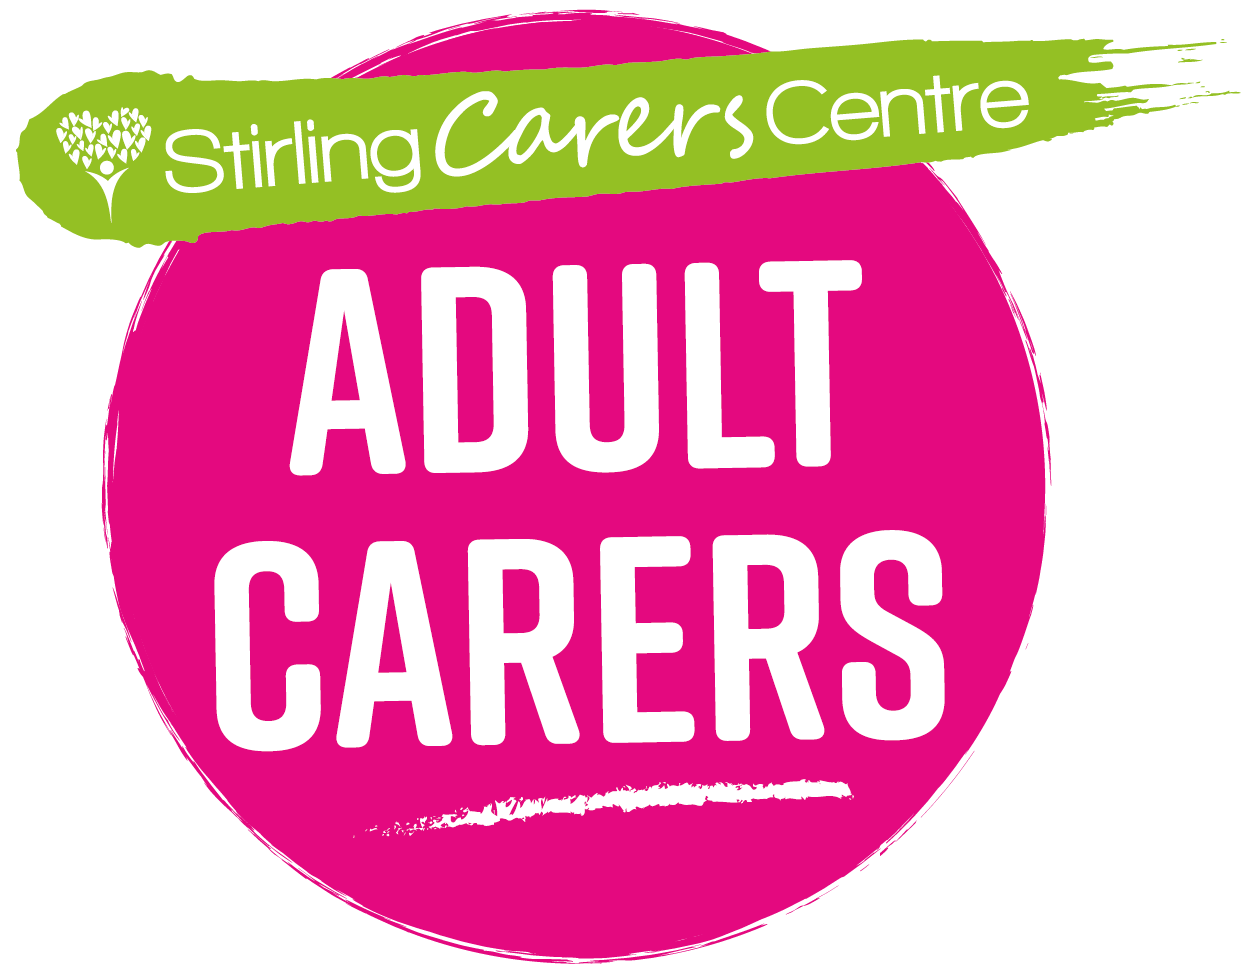 Our Services : Stirling Carers Centre